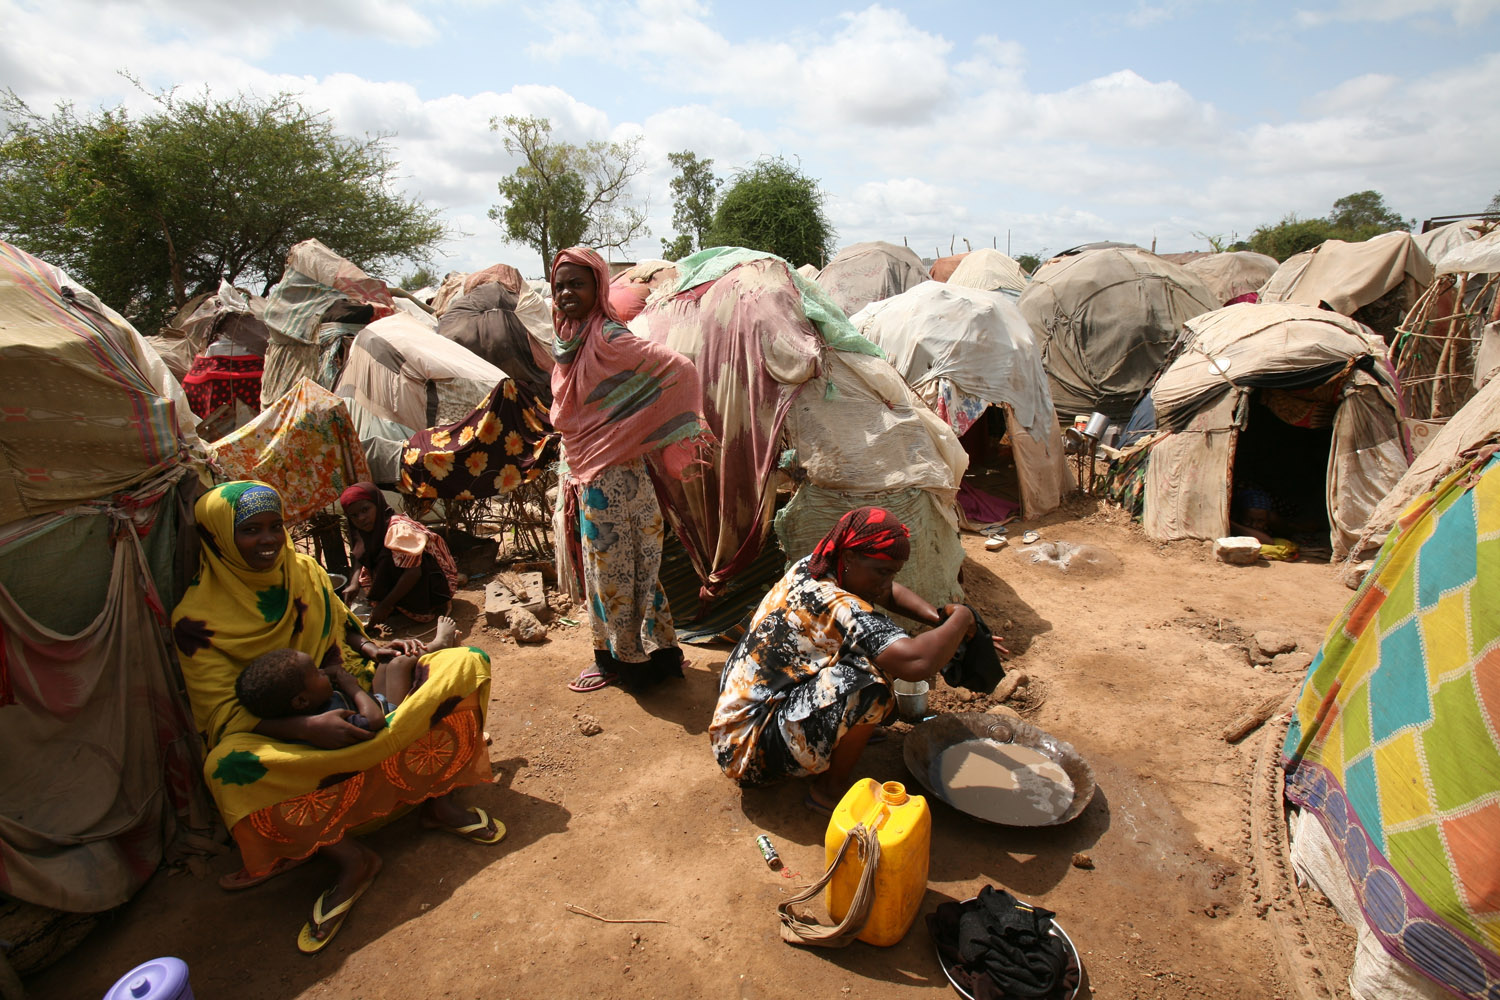 Displaced woman and children at Sheikh Omar camp in Jowhar, Somalia, September 2007. Somalia has not had a functioning government since 1991, when warlords overthrew dictator Mohamed Siad Barre and then turned on each other, pitting the country into years